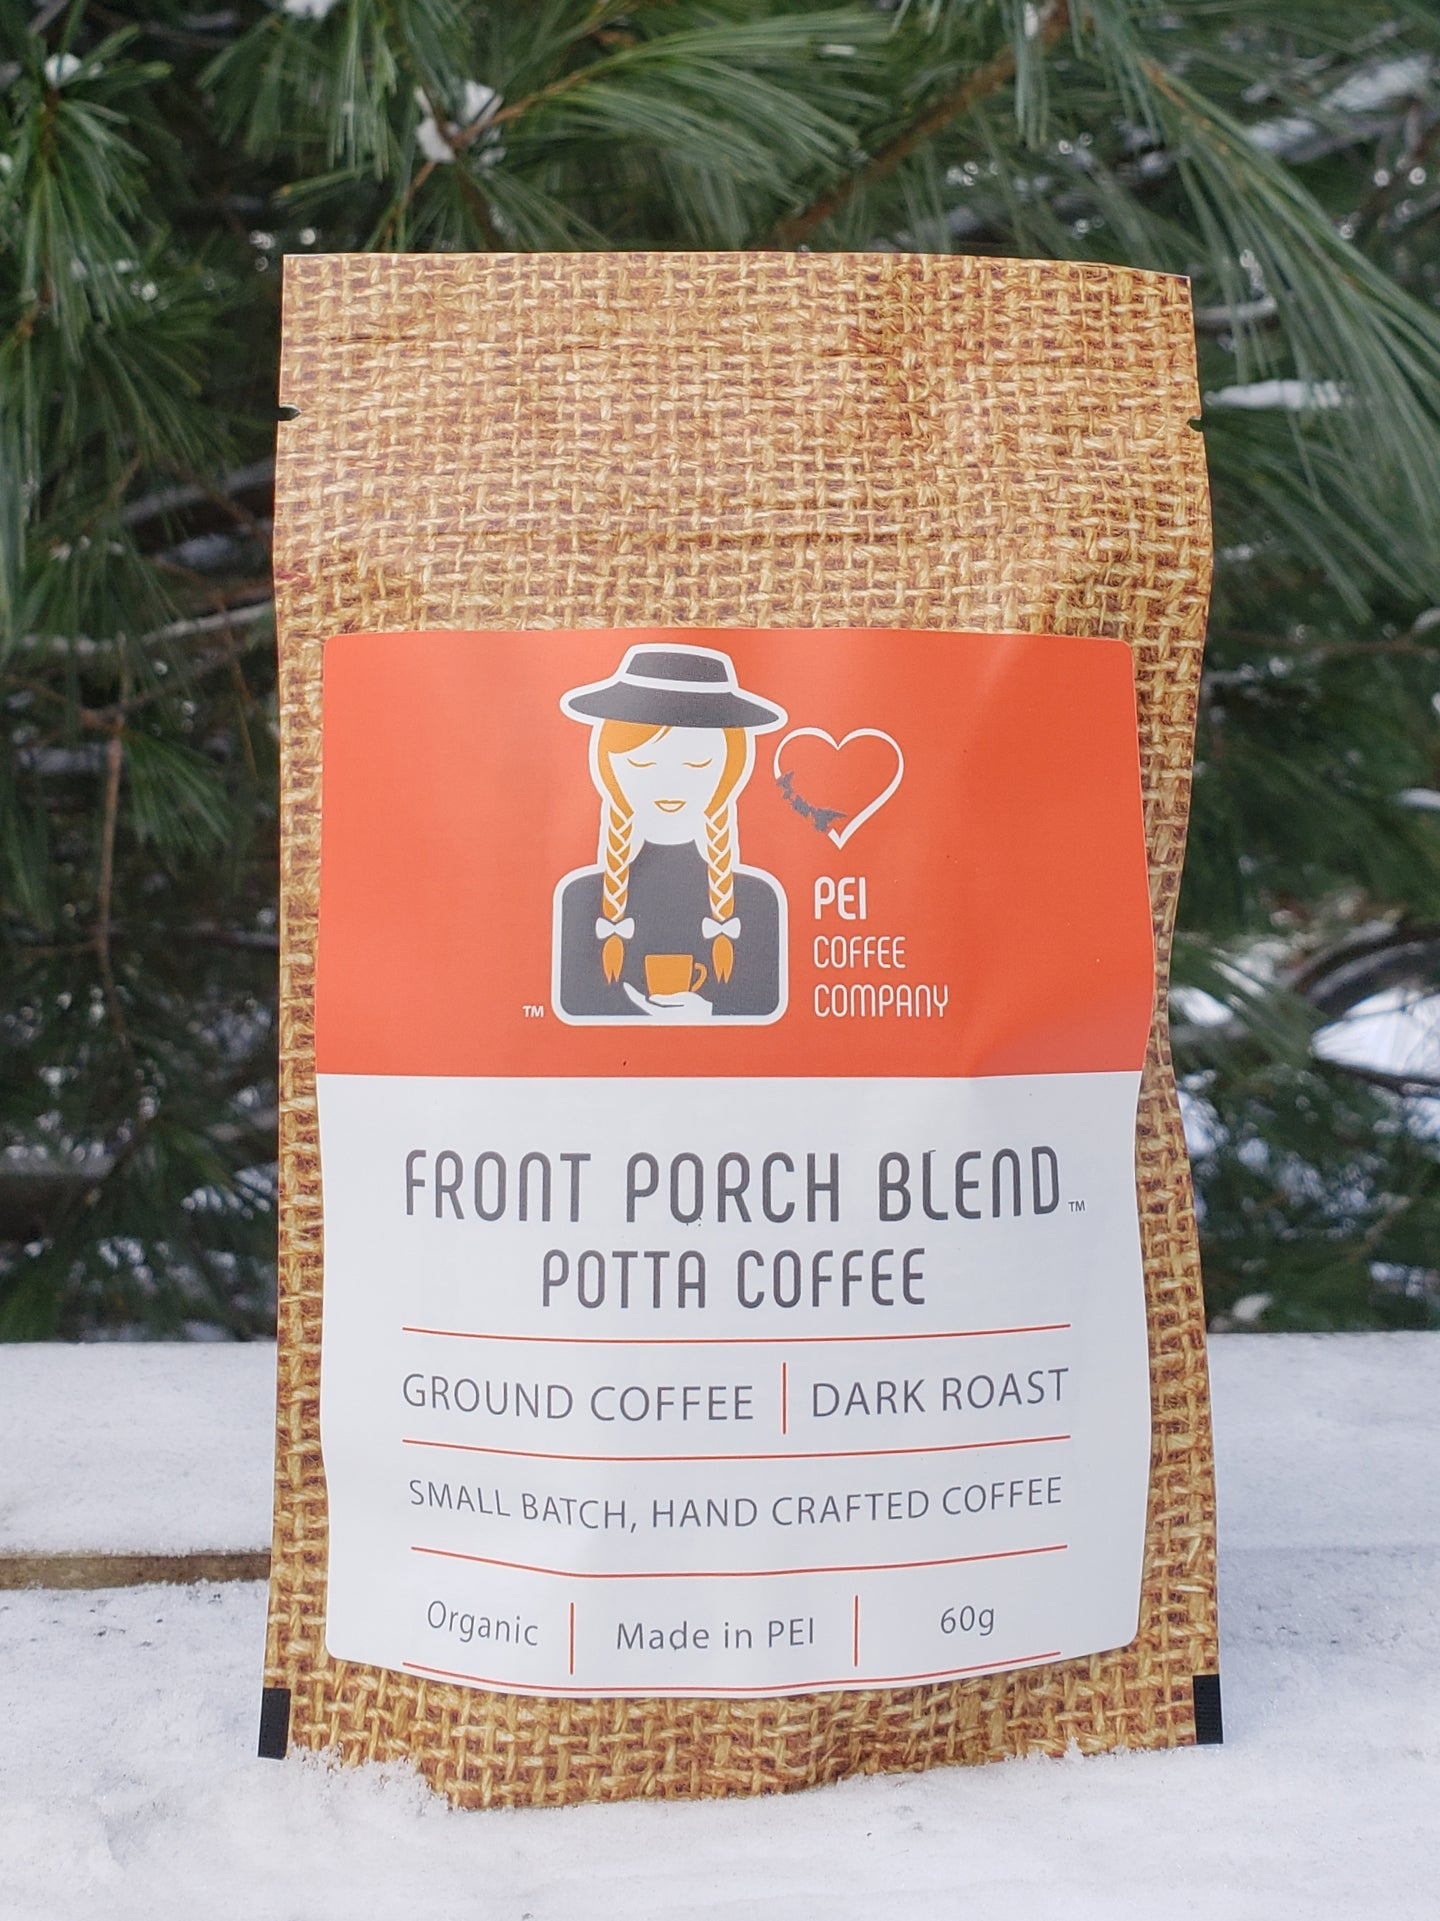 Potta Coffee - Front Porch Blend